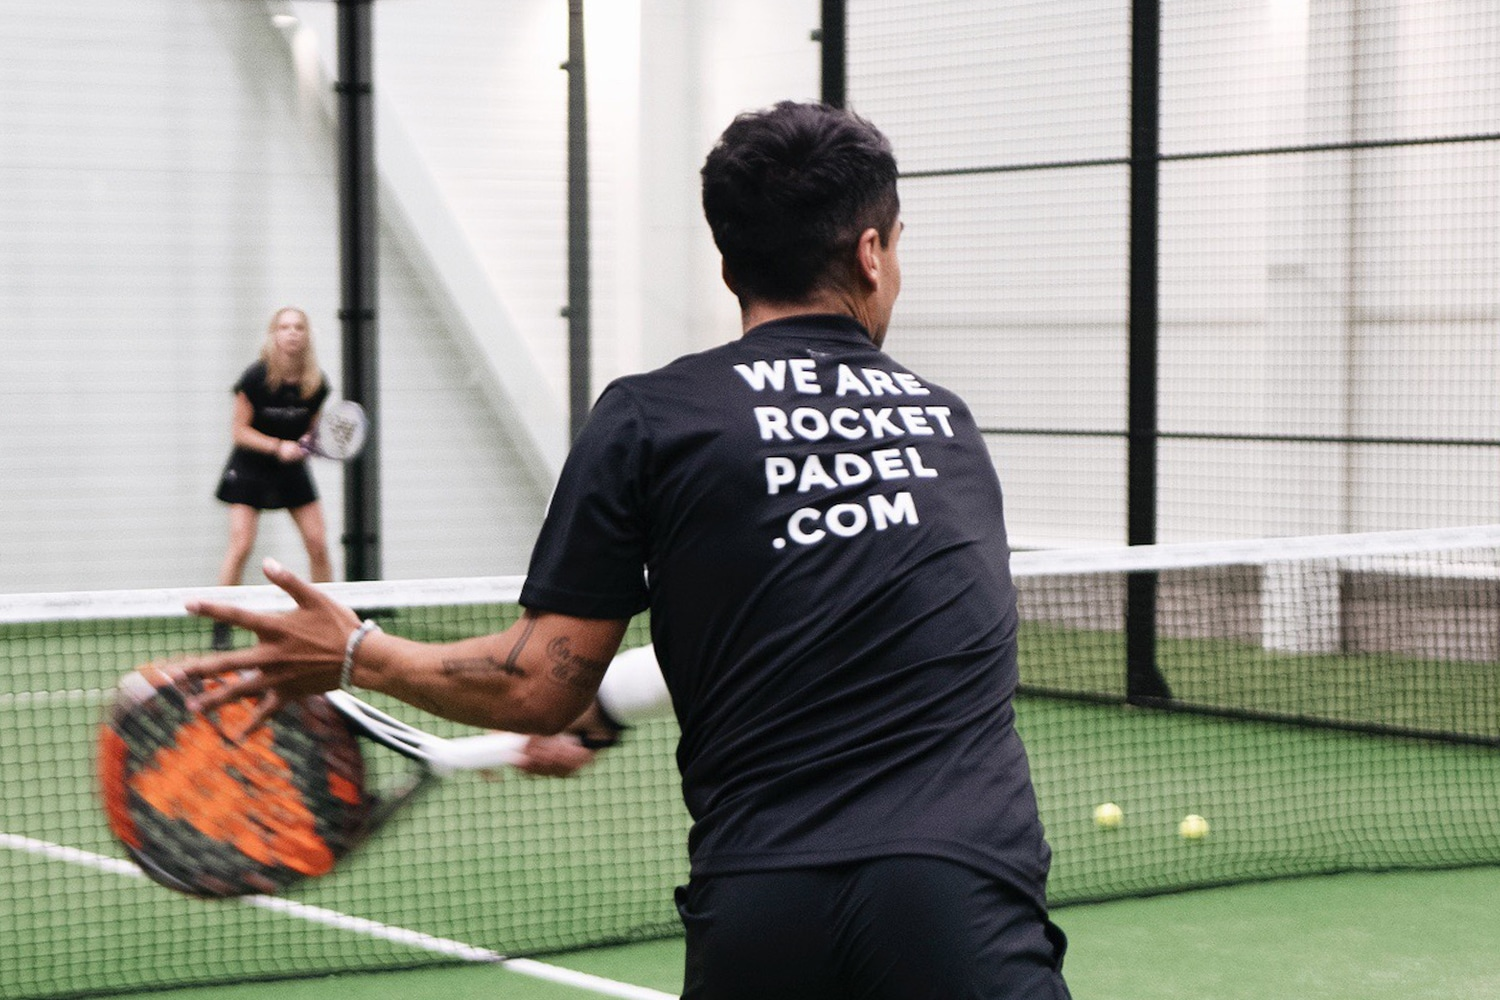 What kind of sport is Padel?